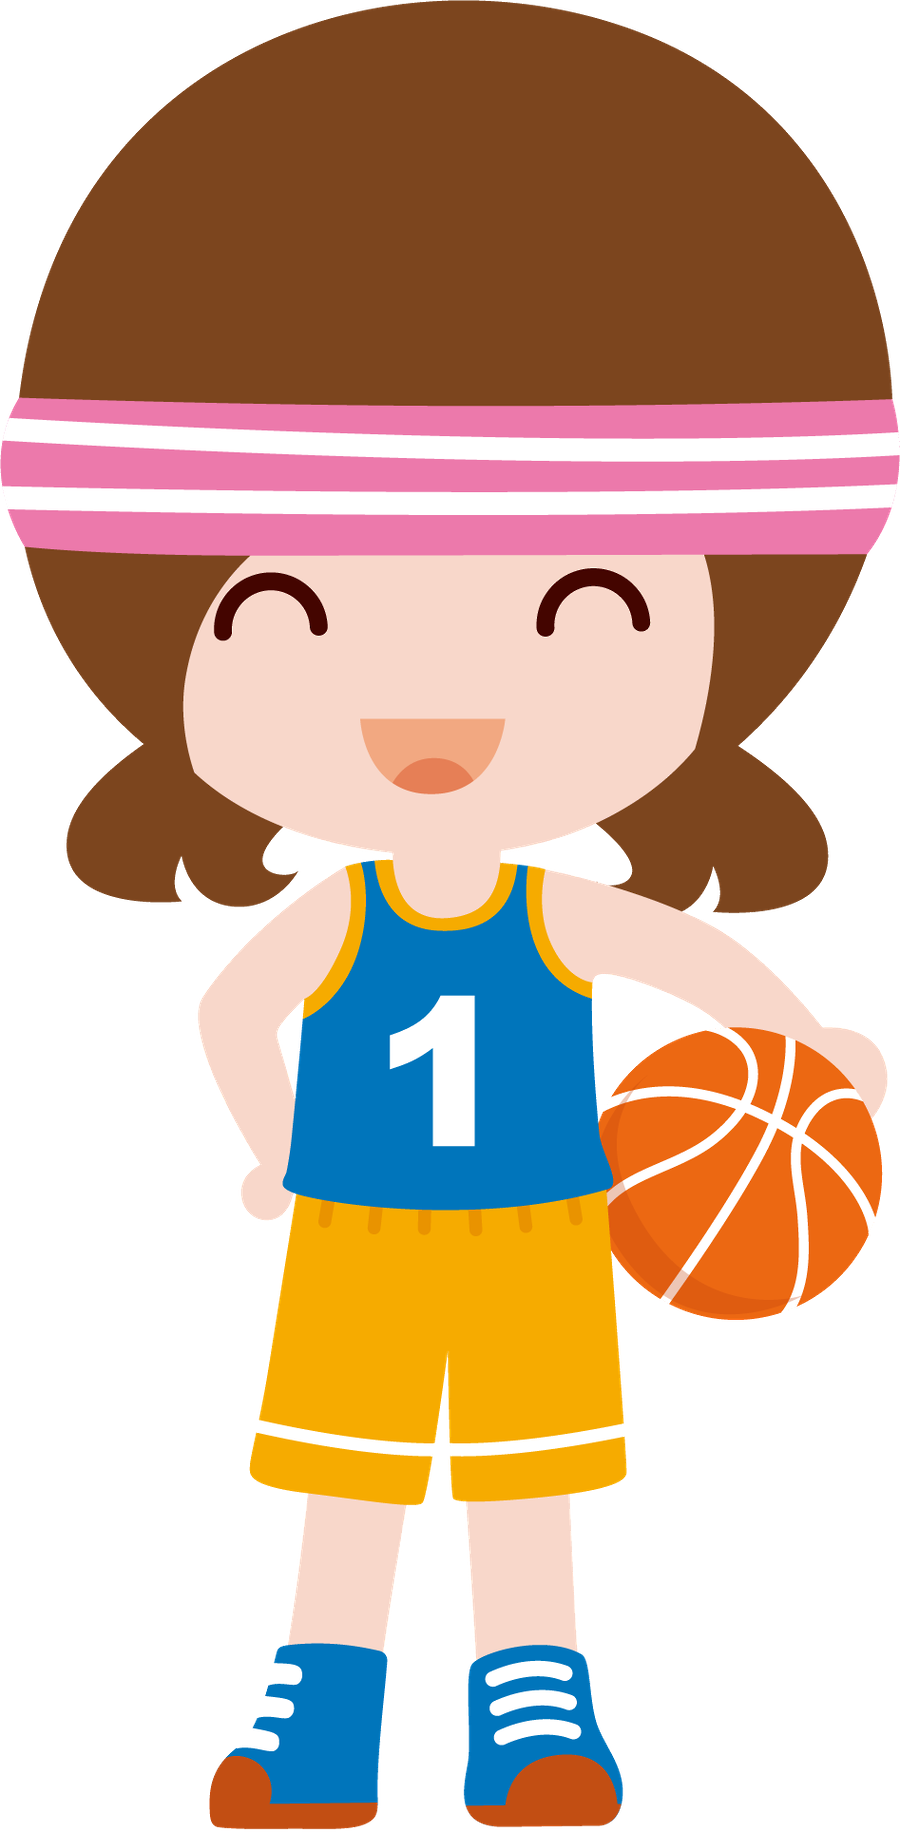 Basquete - Minus | alreadyclipart - sports; | Basquete ...